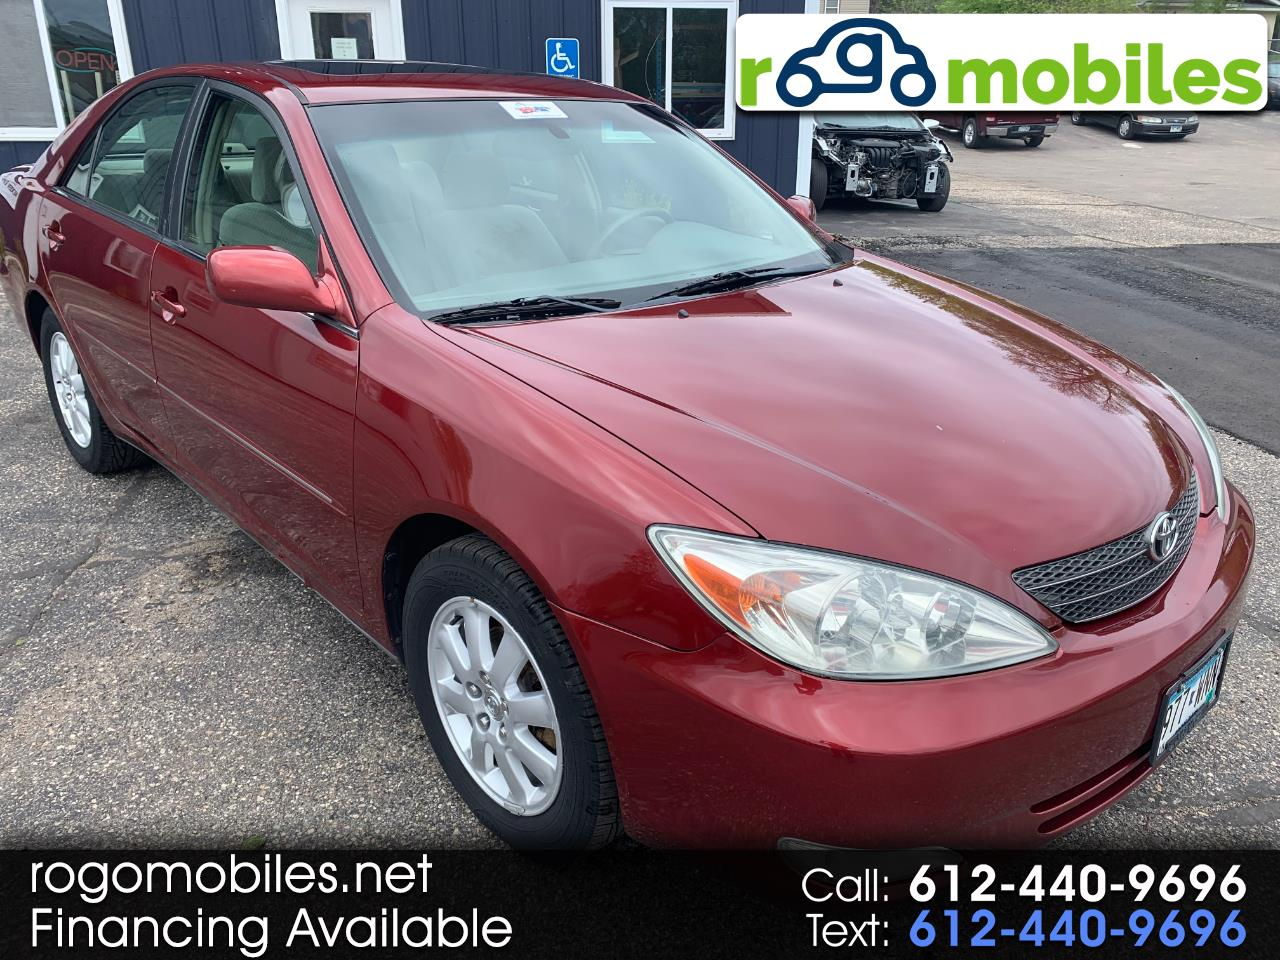 Toyota Camry 4dr Sdn I4 Auto XLE (Natl) 2003